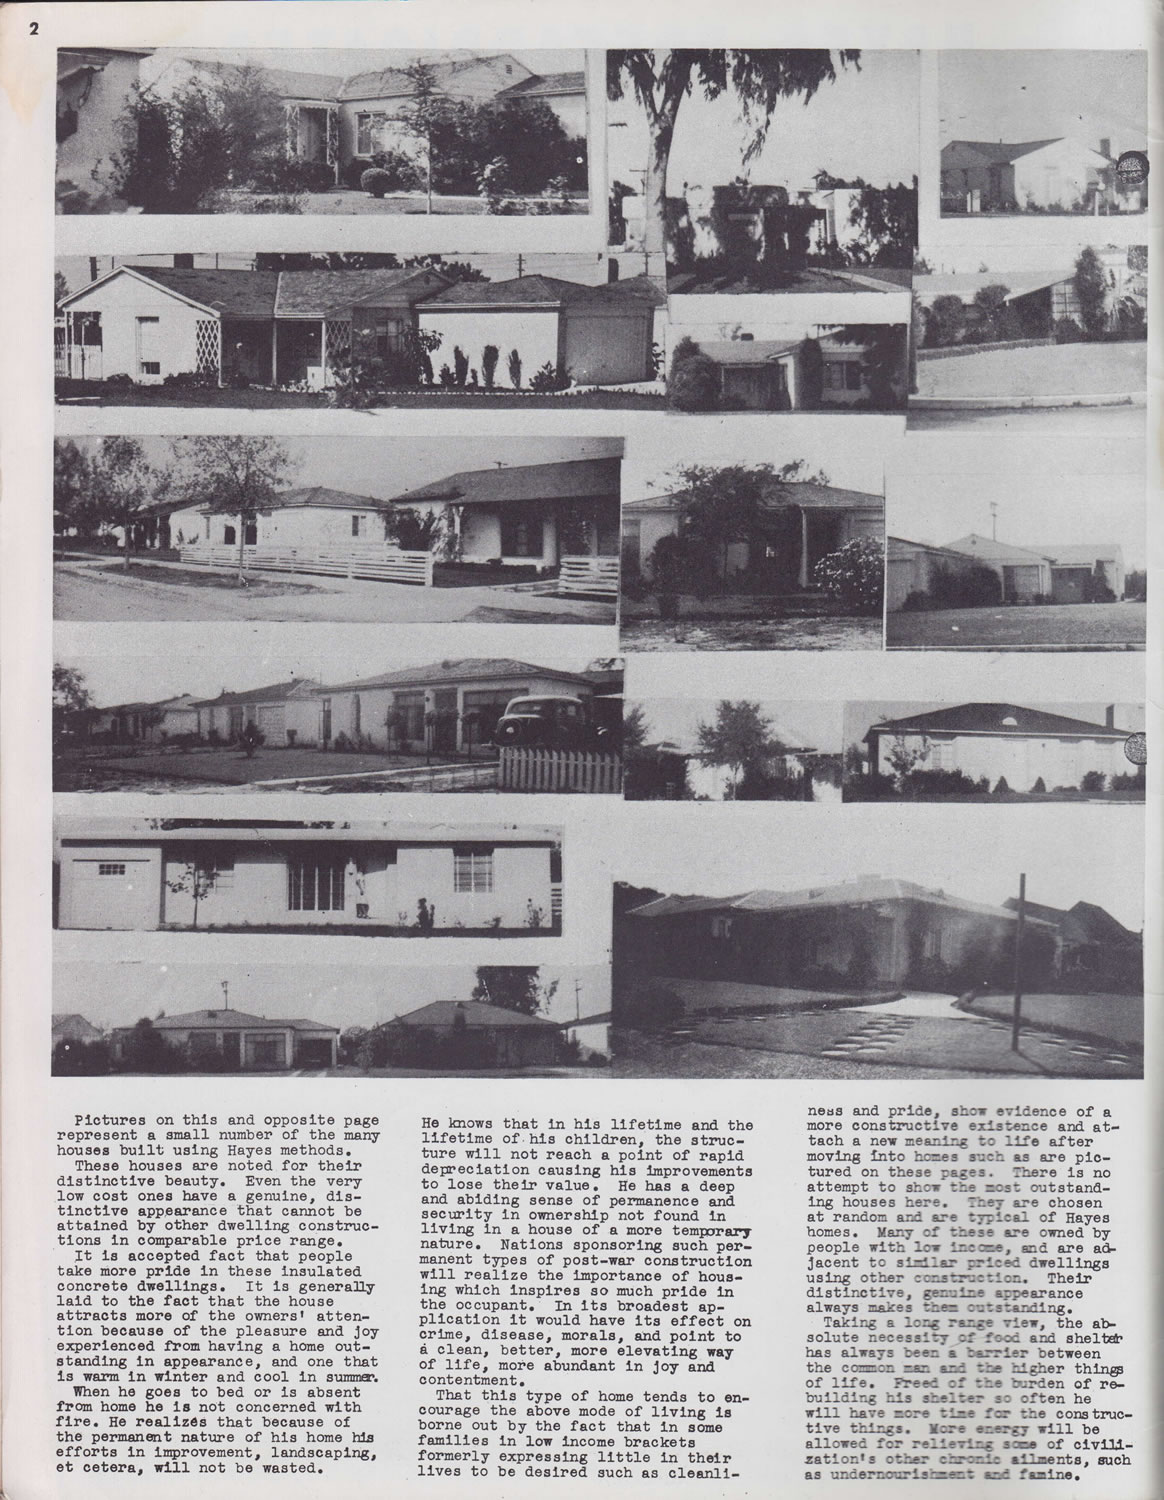 HBH_450000Prefabricated_Page_02